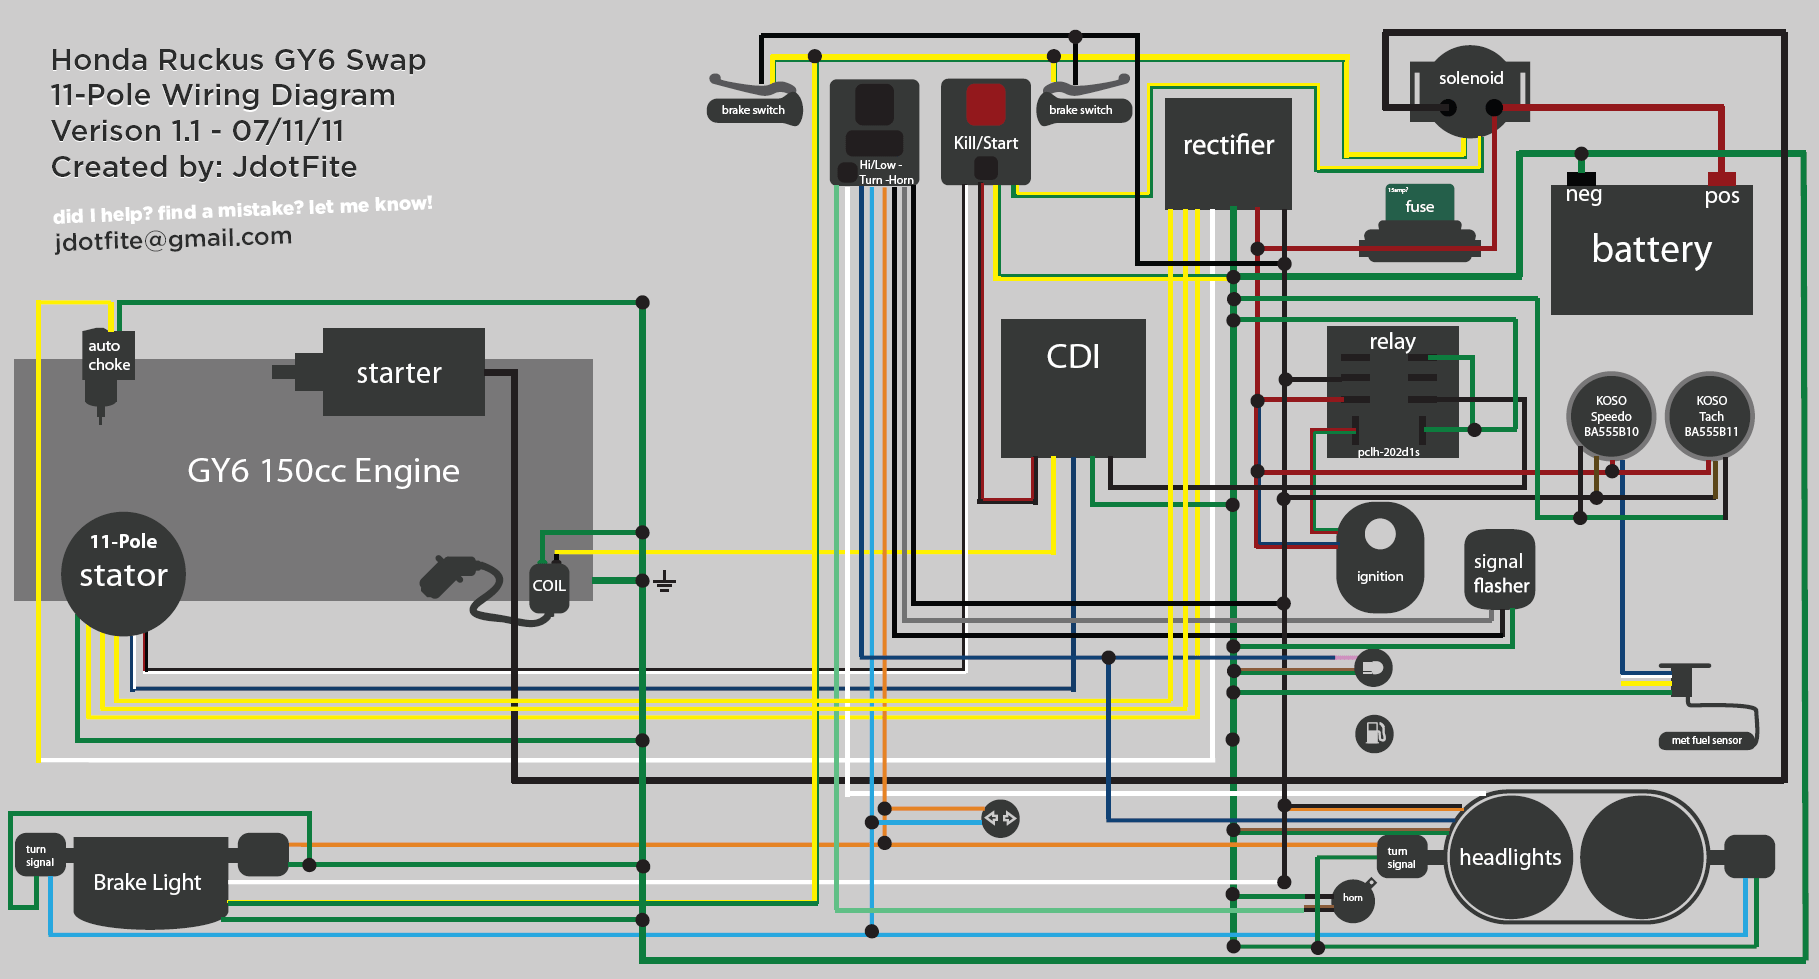 ruckus gy6 wiring diagram gy6 wiring diagram 150cc scooter wiring diagram \u2022 wiring diagrams  at eliteediting.co